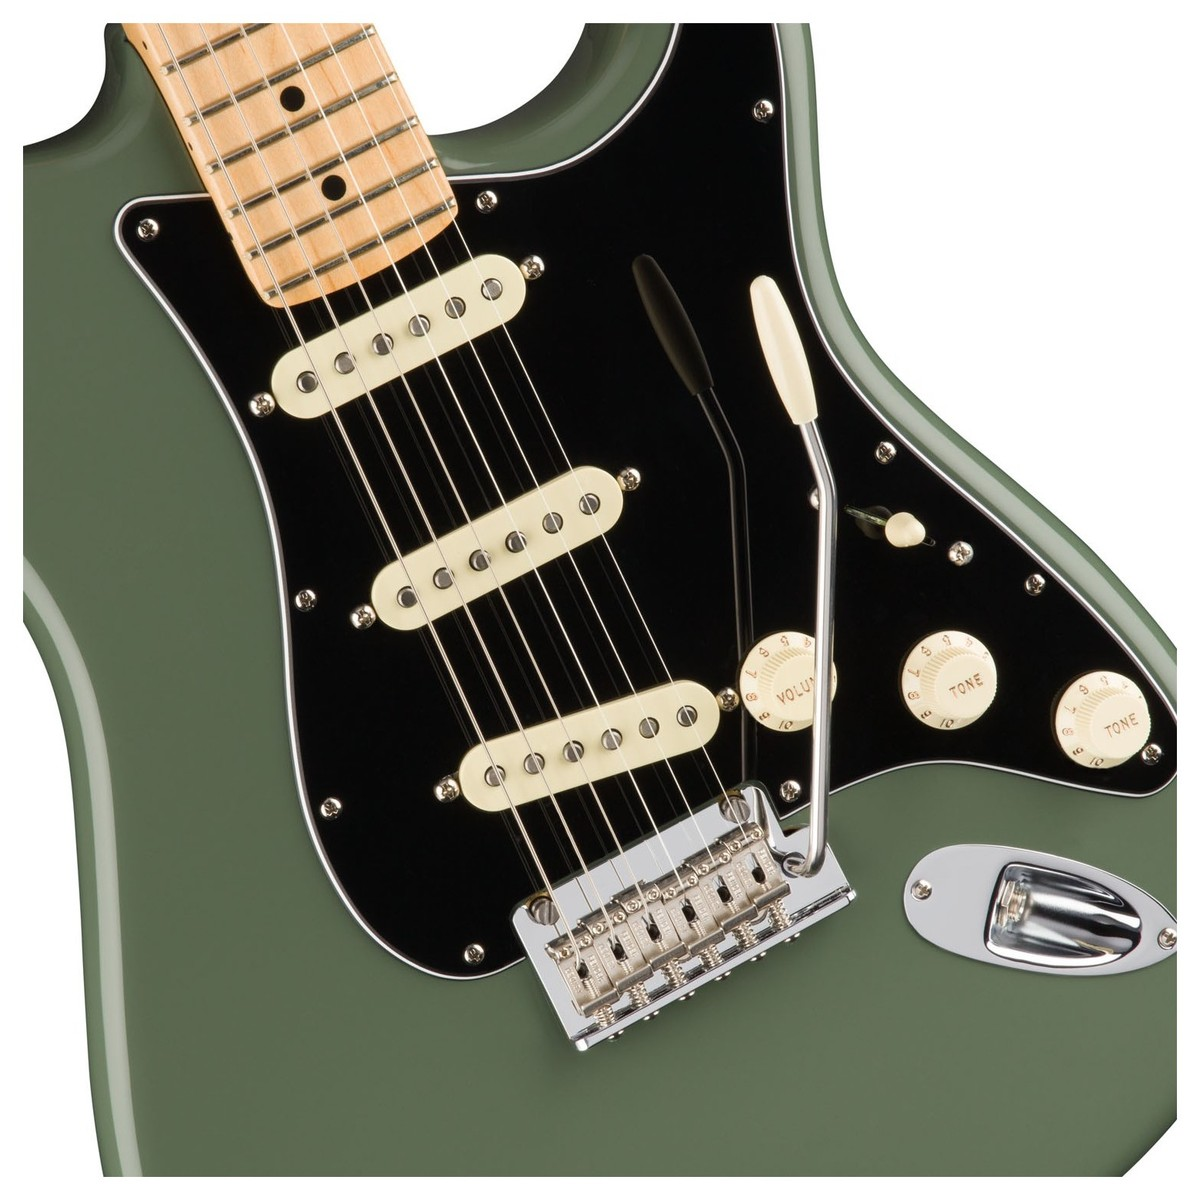 Fender American Professional Stratocaster Mn Antique Olive At Blend Control Options And Help Guitar Forum Loading Zoom